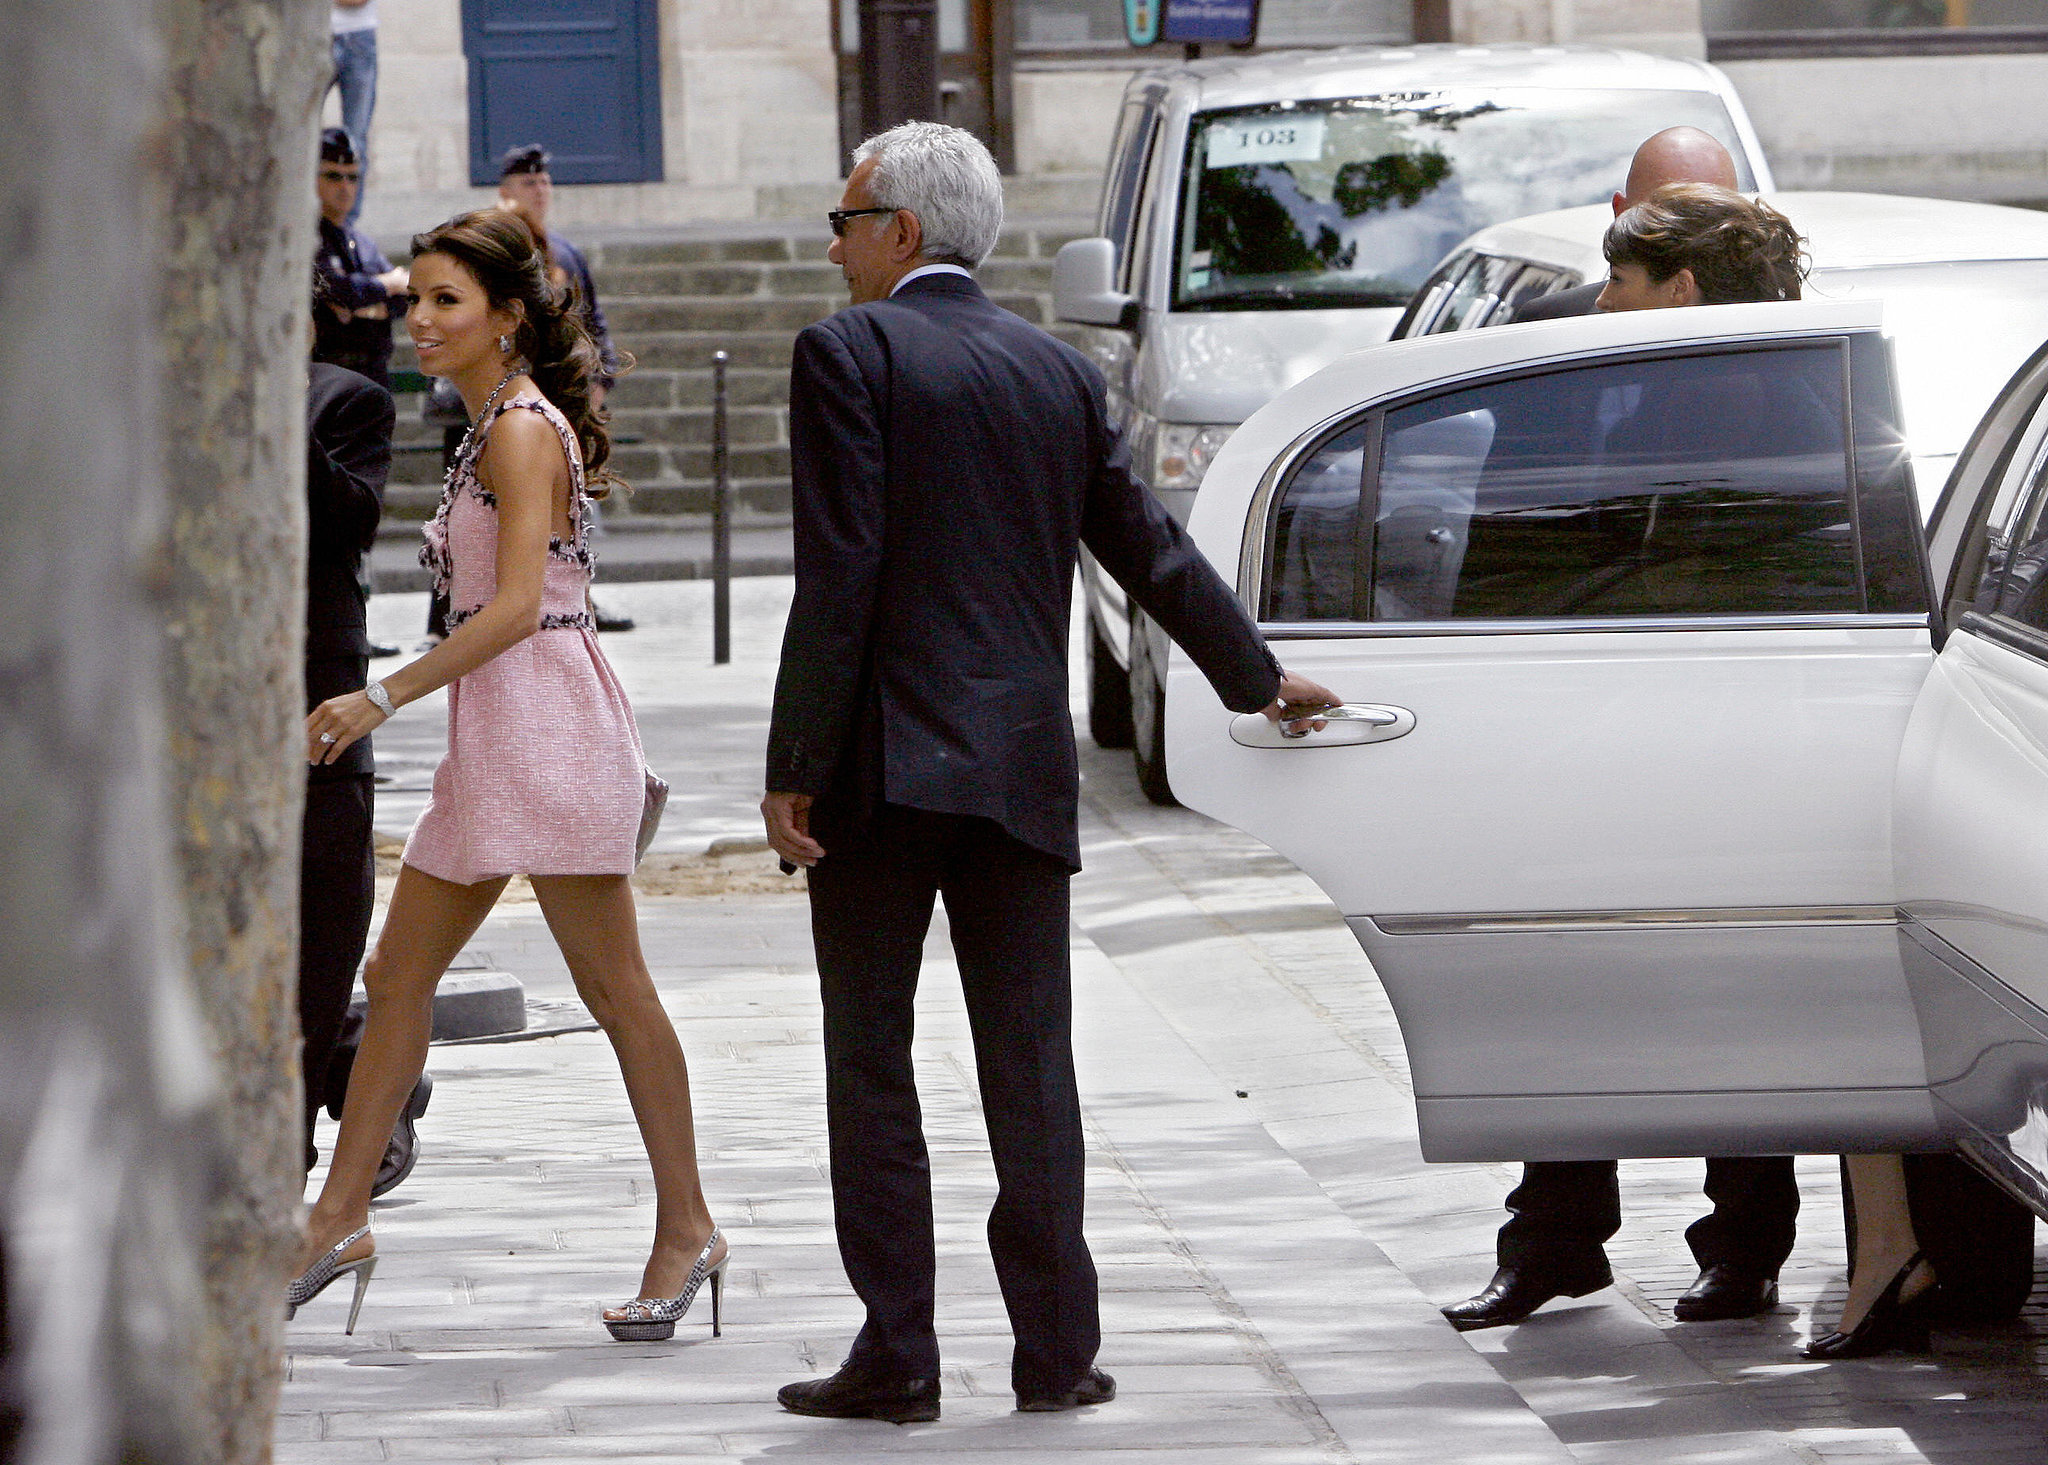 Eva arrived to the Paris city hall the day before her religious ceremony.